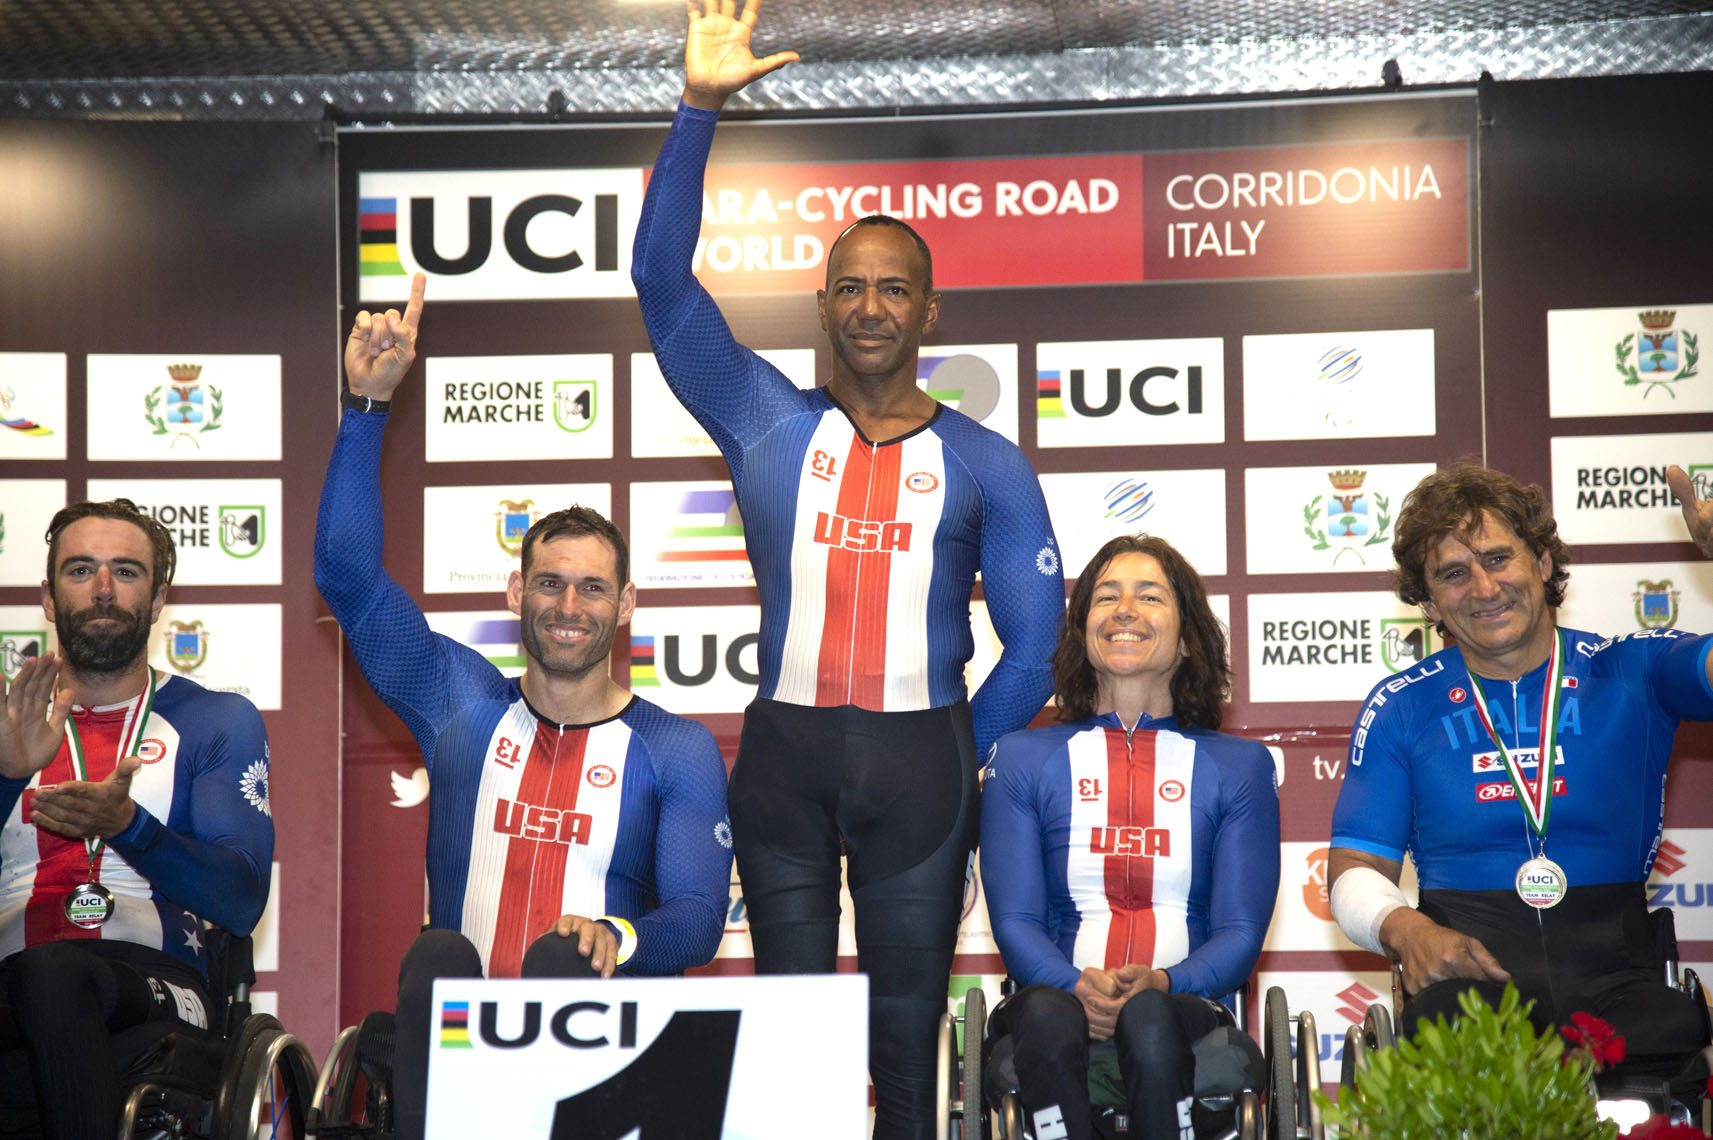 teamrelayUCI Paracycling World Cup, Corridonia, Italy